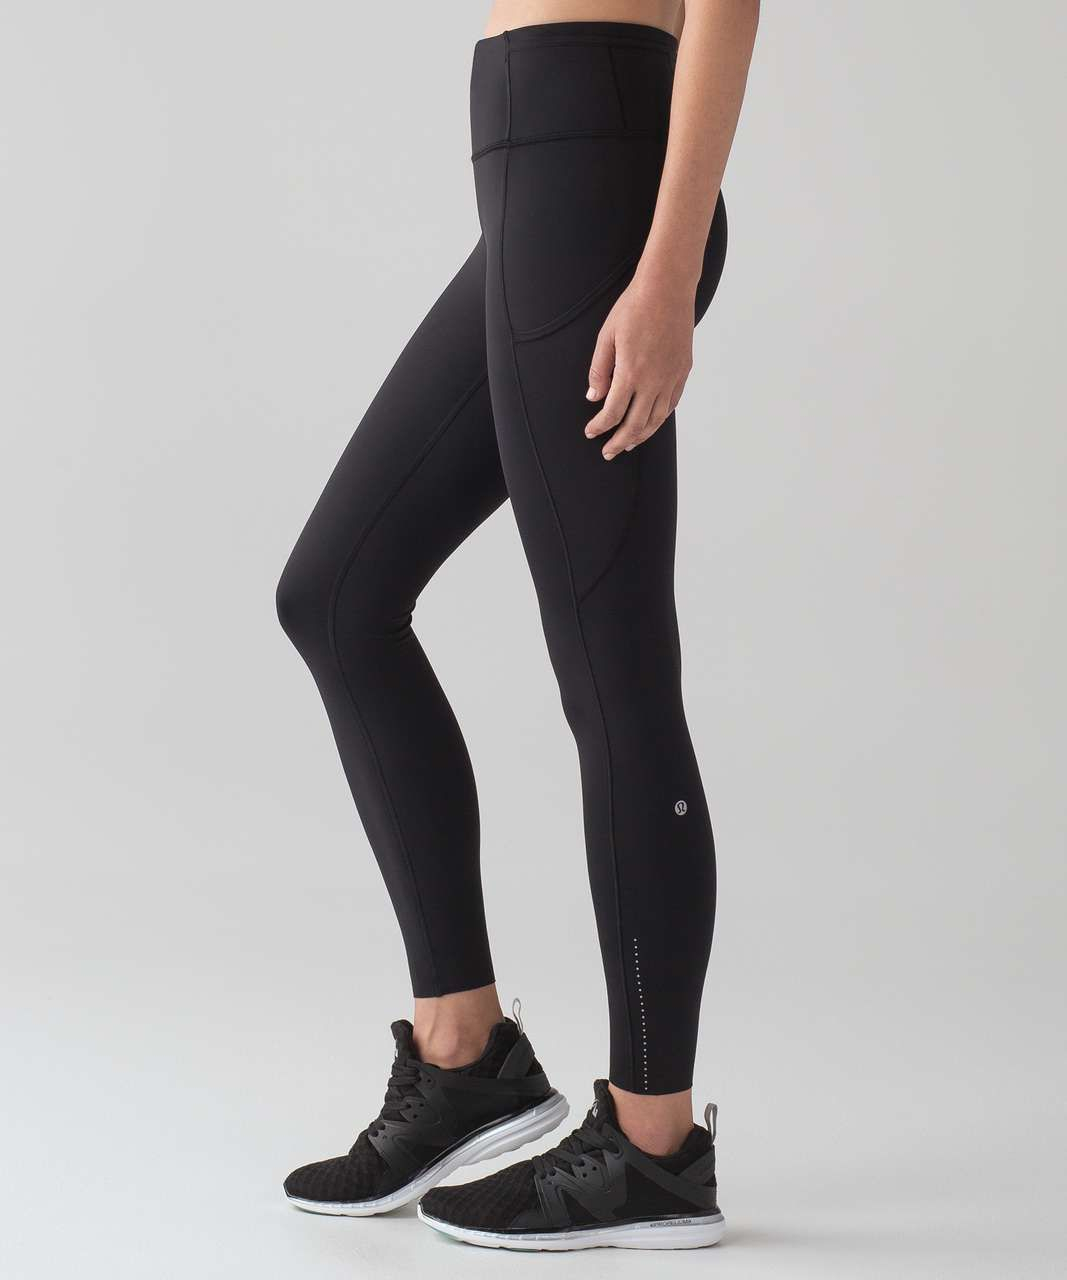 736409dd8eb3dc Fast and Free Tight Lululemon Lululemon Leggings With Pockets, Lulu Lemon,  Workout Wear,